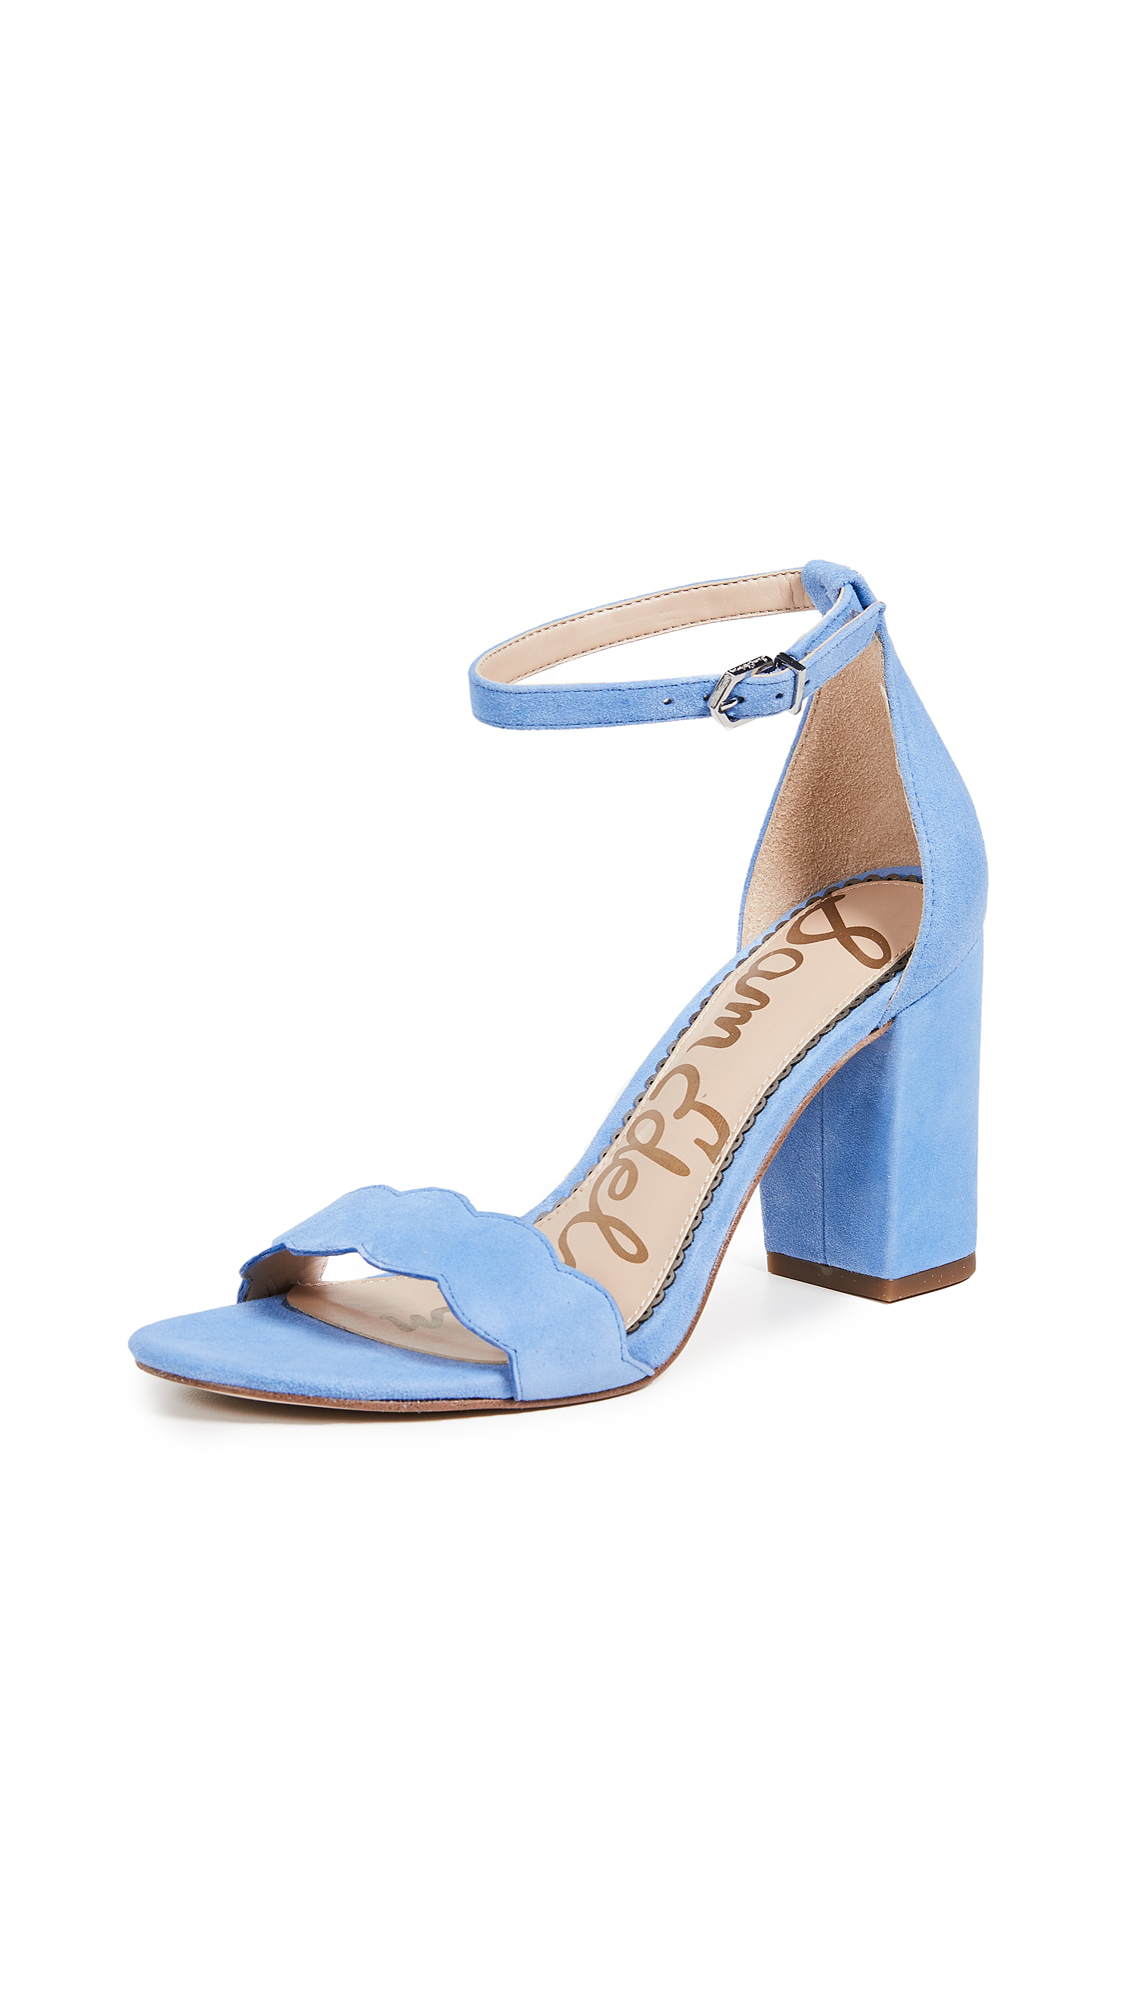 Sam Edelman Odila Suede Sandals - Cornflower Blue